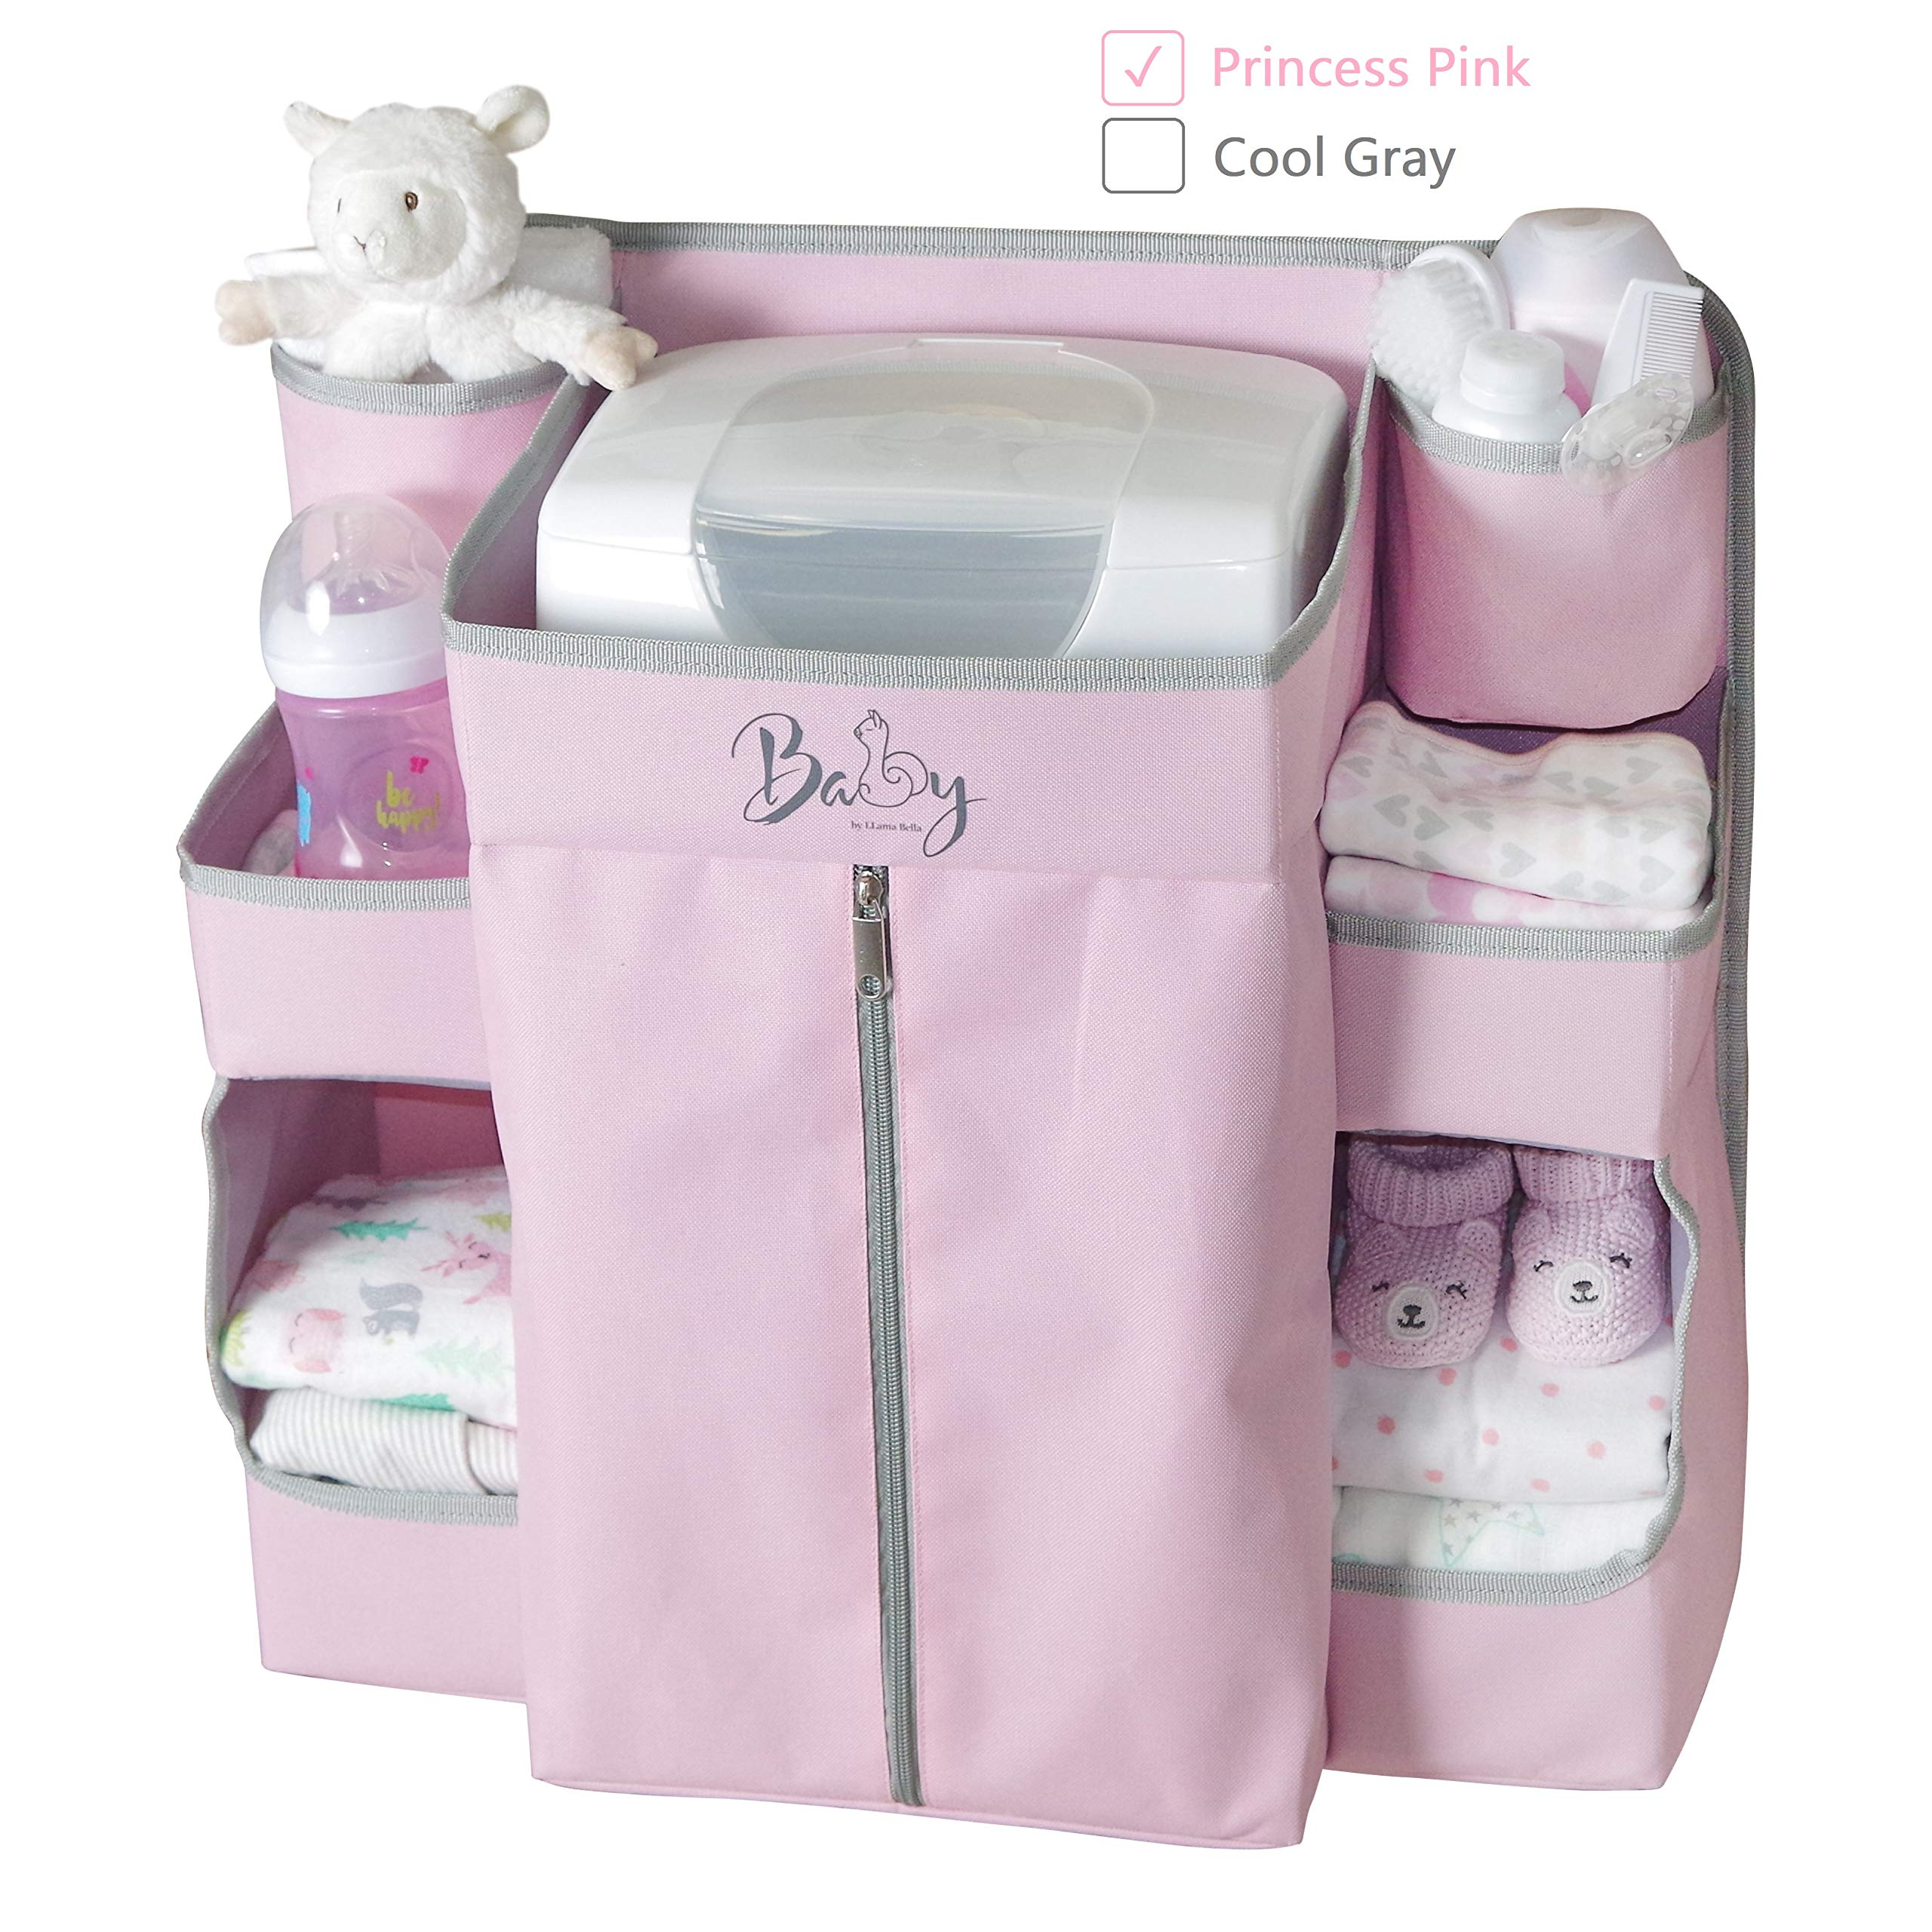 Llama Bella Premium Nursery Organizer and Baby Diaper Caddy | Hanging Diaper Organizer for Baby Essentials | Hang on Crib, Changing Table, Playard or Furniture | Portable Storage for Wipes (Pink) by Llama Bella